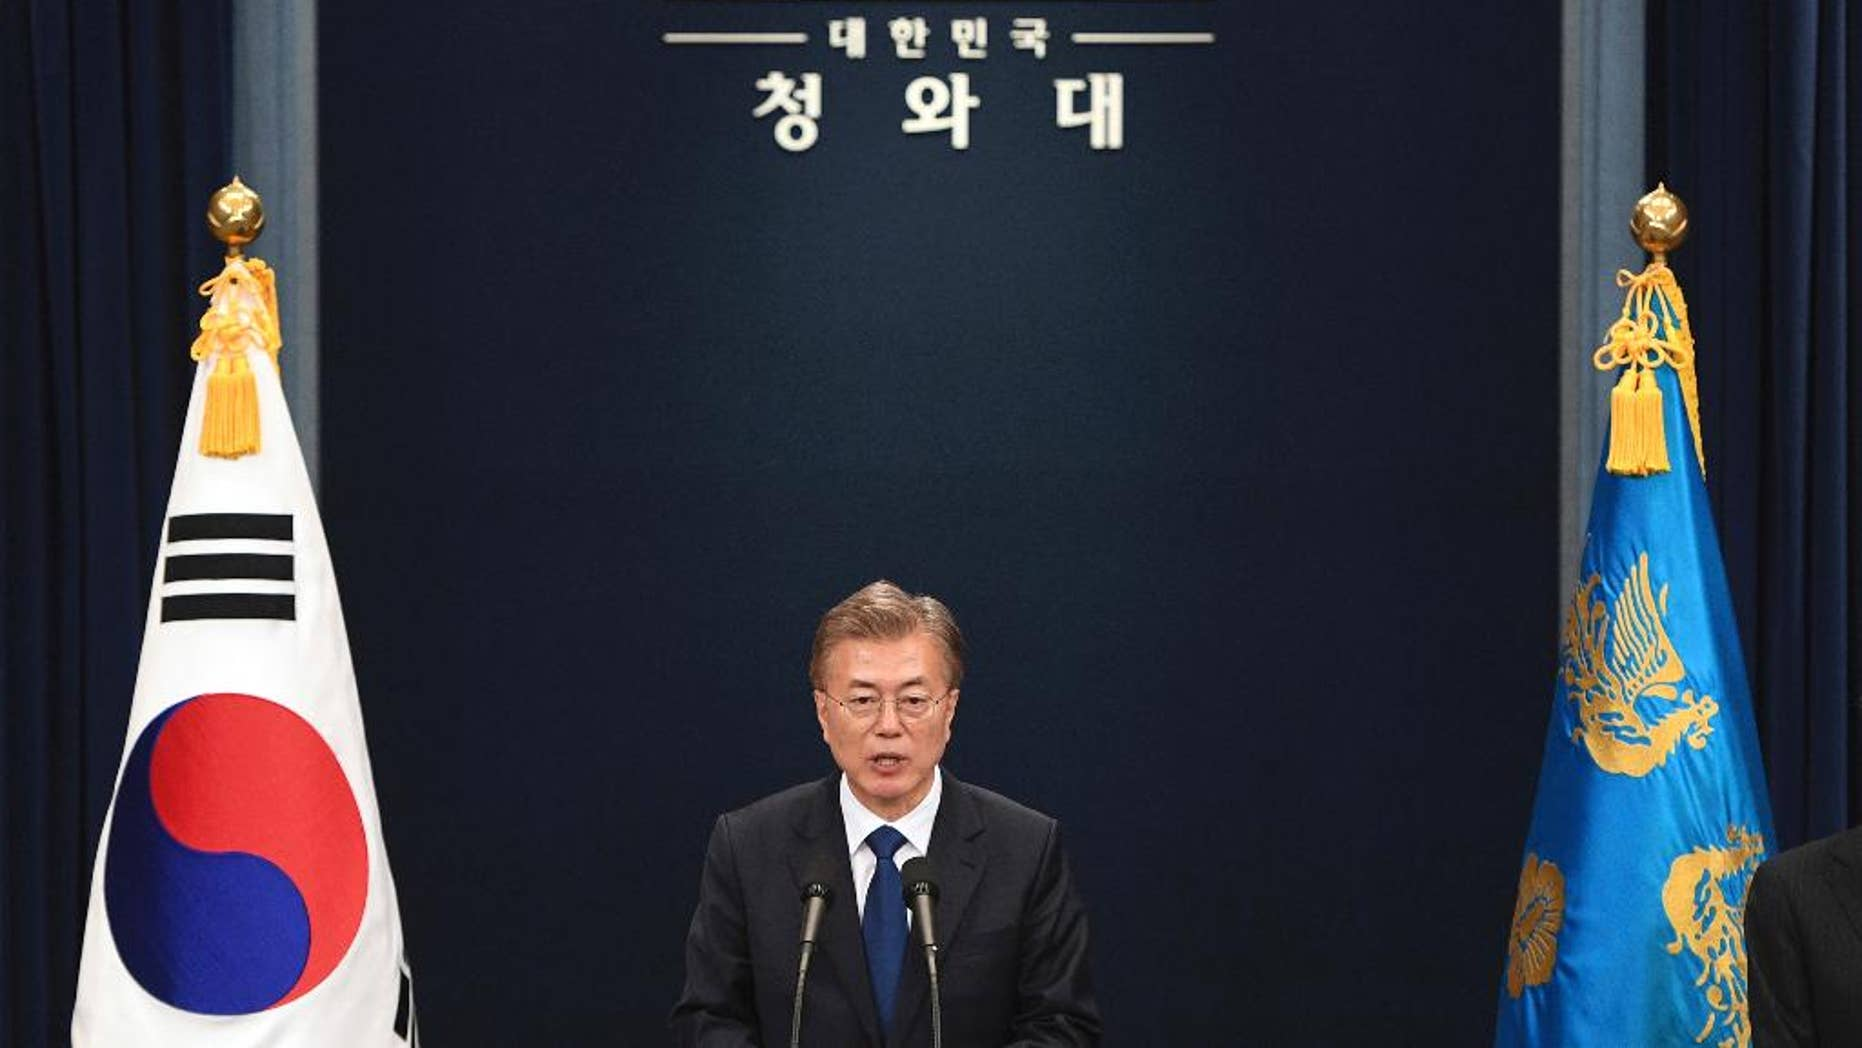 In this May 10, 2017, file photo, South Korea's new President Moon Jae-In speaks at the presidential Blue House in Seoul. Addressing the nation after taking the oath of office on Wednesday, May 10, 2017, South Korean President Moon Jae-in vowed to eventually move out of the Blue House, where every modern South Korean president has lived and worked since the end of World War II. (JungJ Yeon-Je/Pool Photo via AP, File)